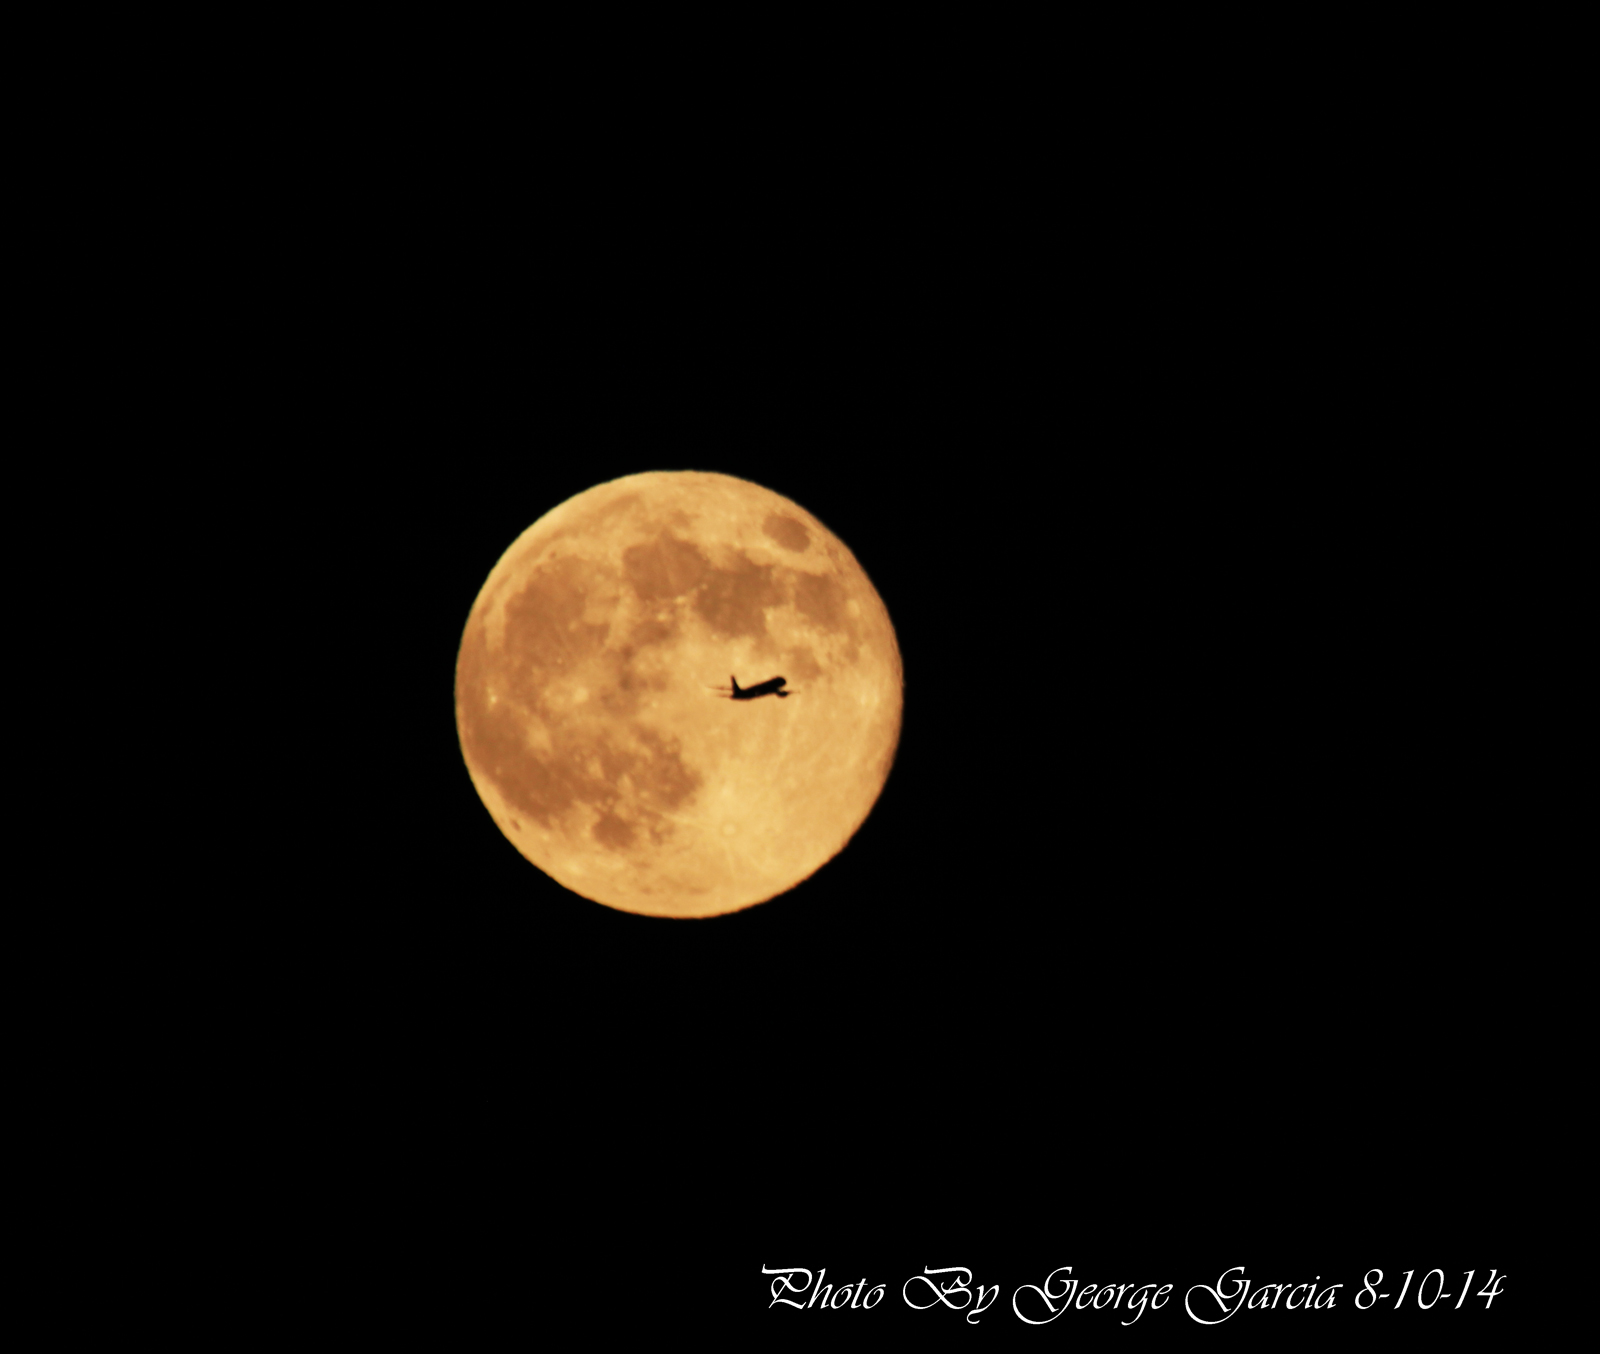 August 2014 Supermoon with Plane